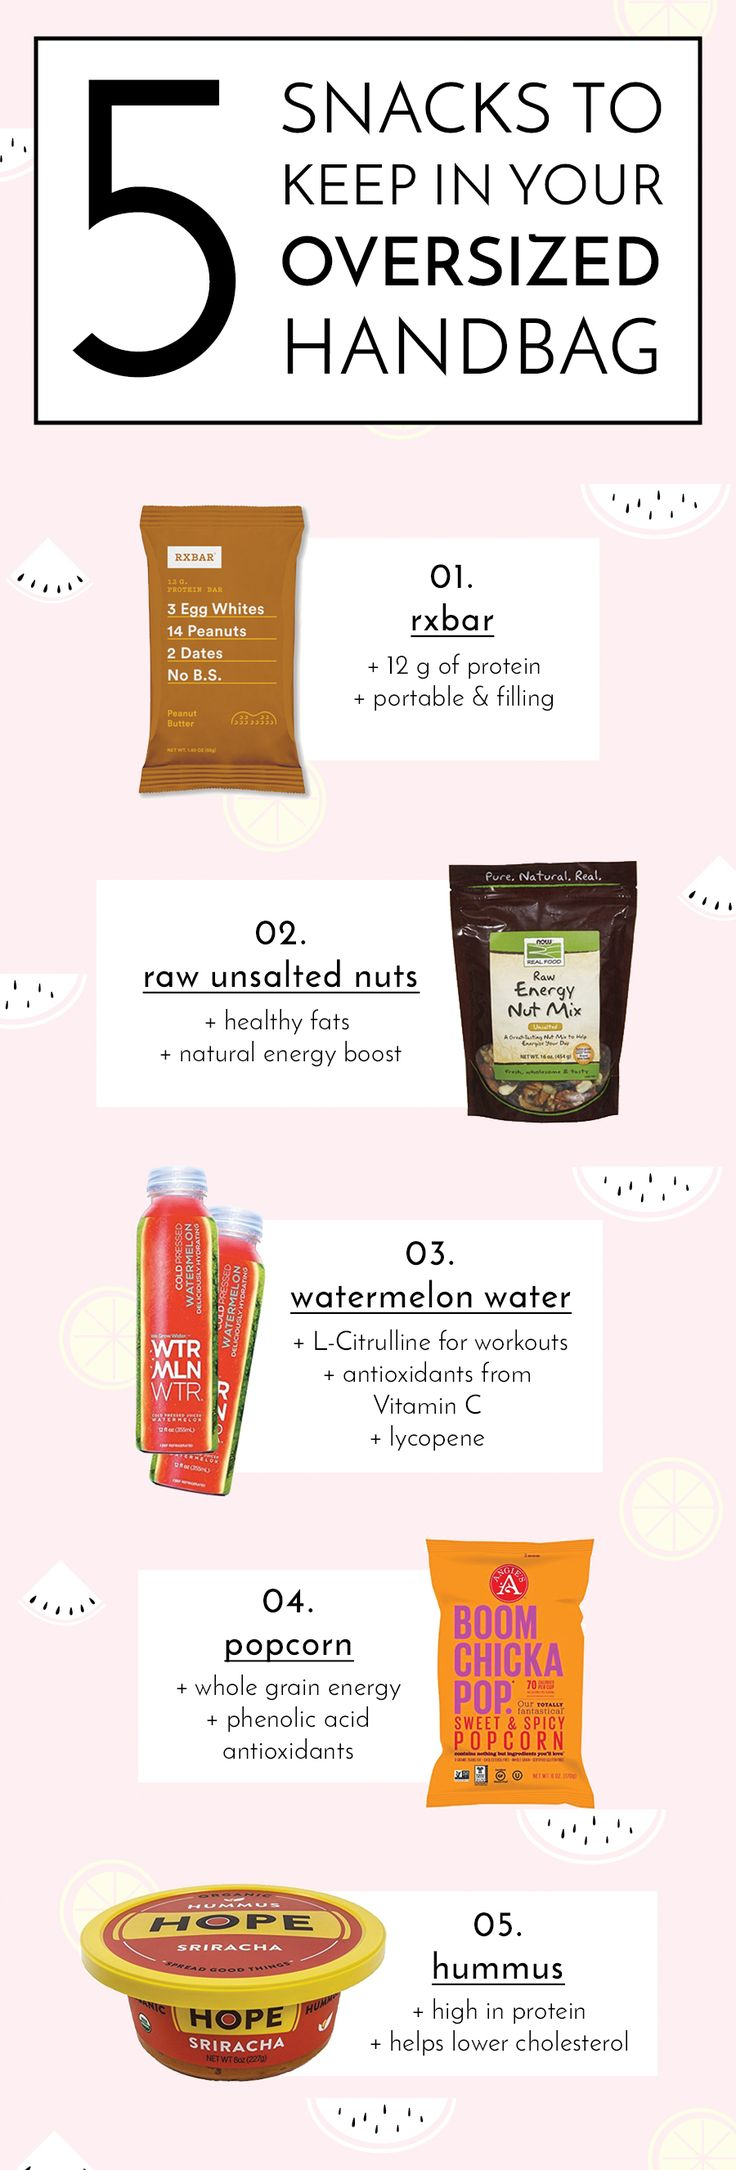 ::You should ALWAYS have healthy on the go snacks. You know, snacks for when you're hangry but don't want a bag of chips. Check out my top 5 snacks!::